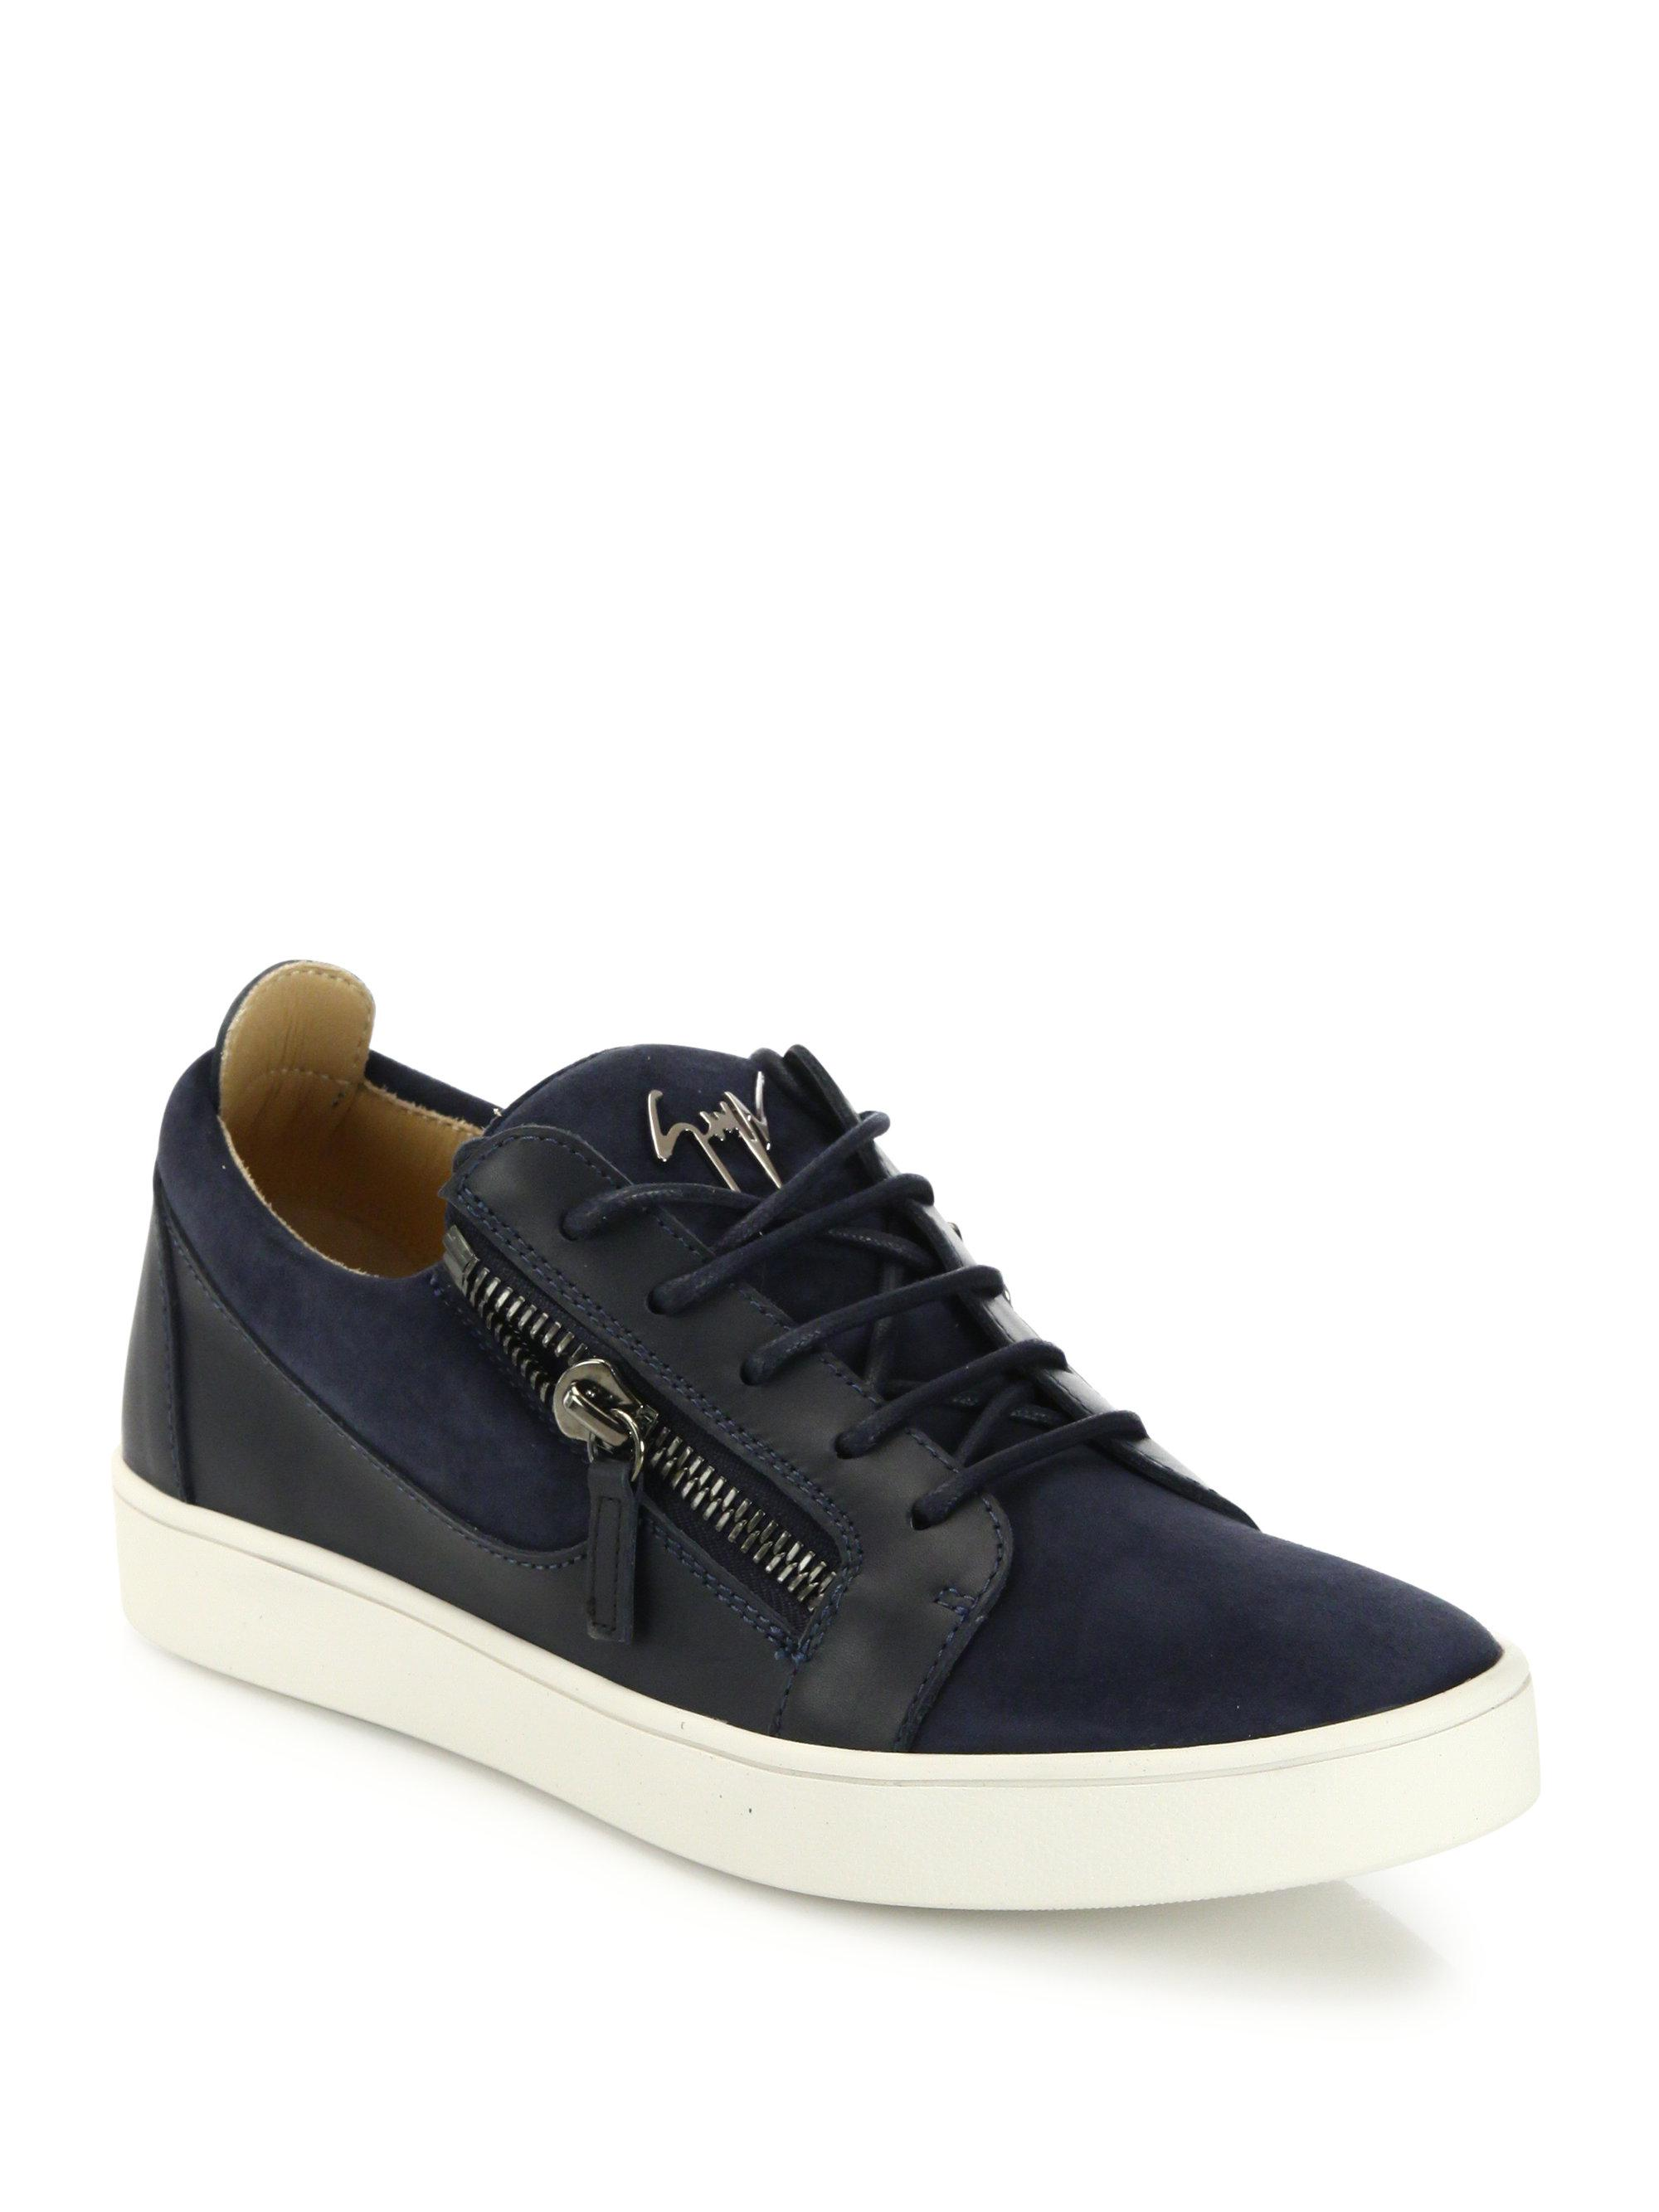 Giuseppe ZanottiZippered Suede & Leather Low-Top Sneakers 4JH7P